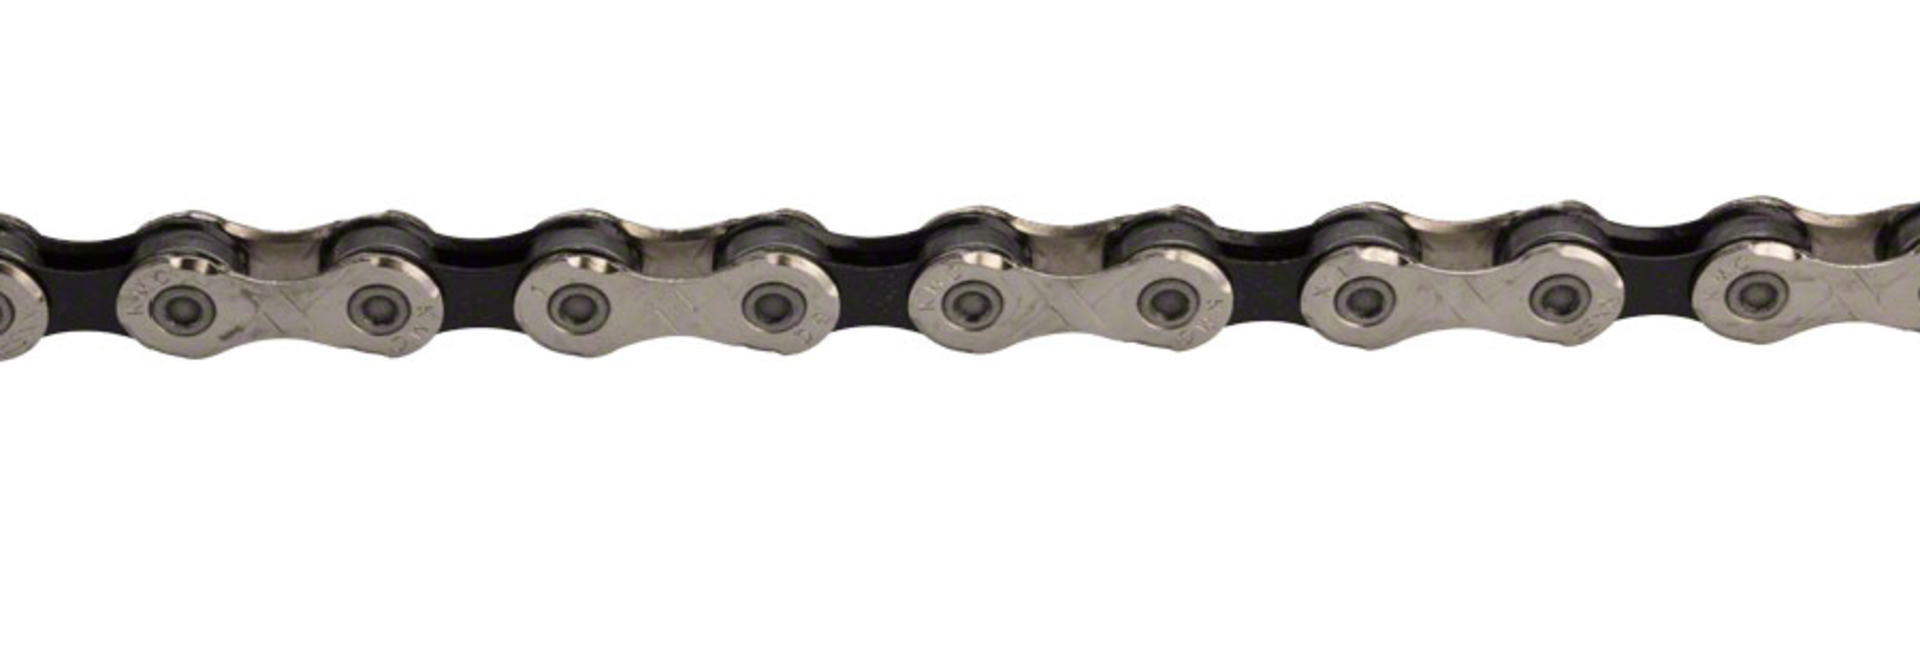 KMC X11.93 Chain - 11-Speed, 116 Links, Black/Silver